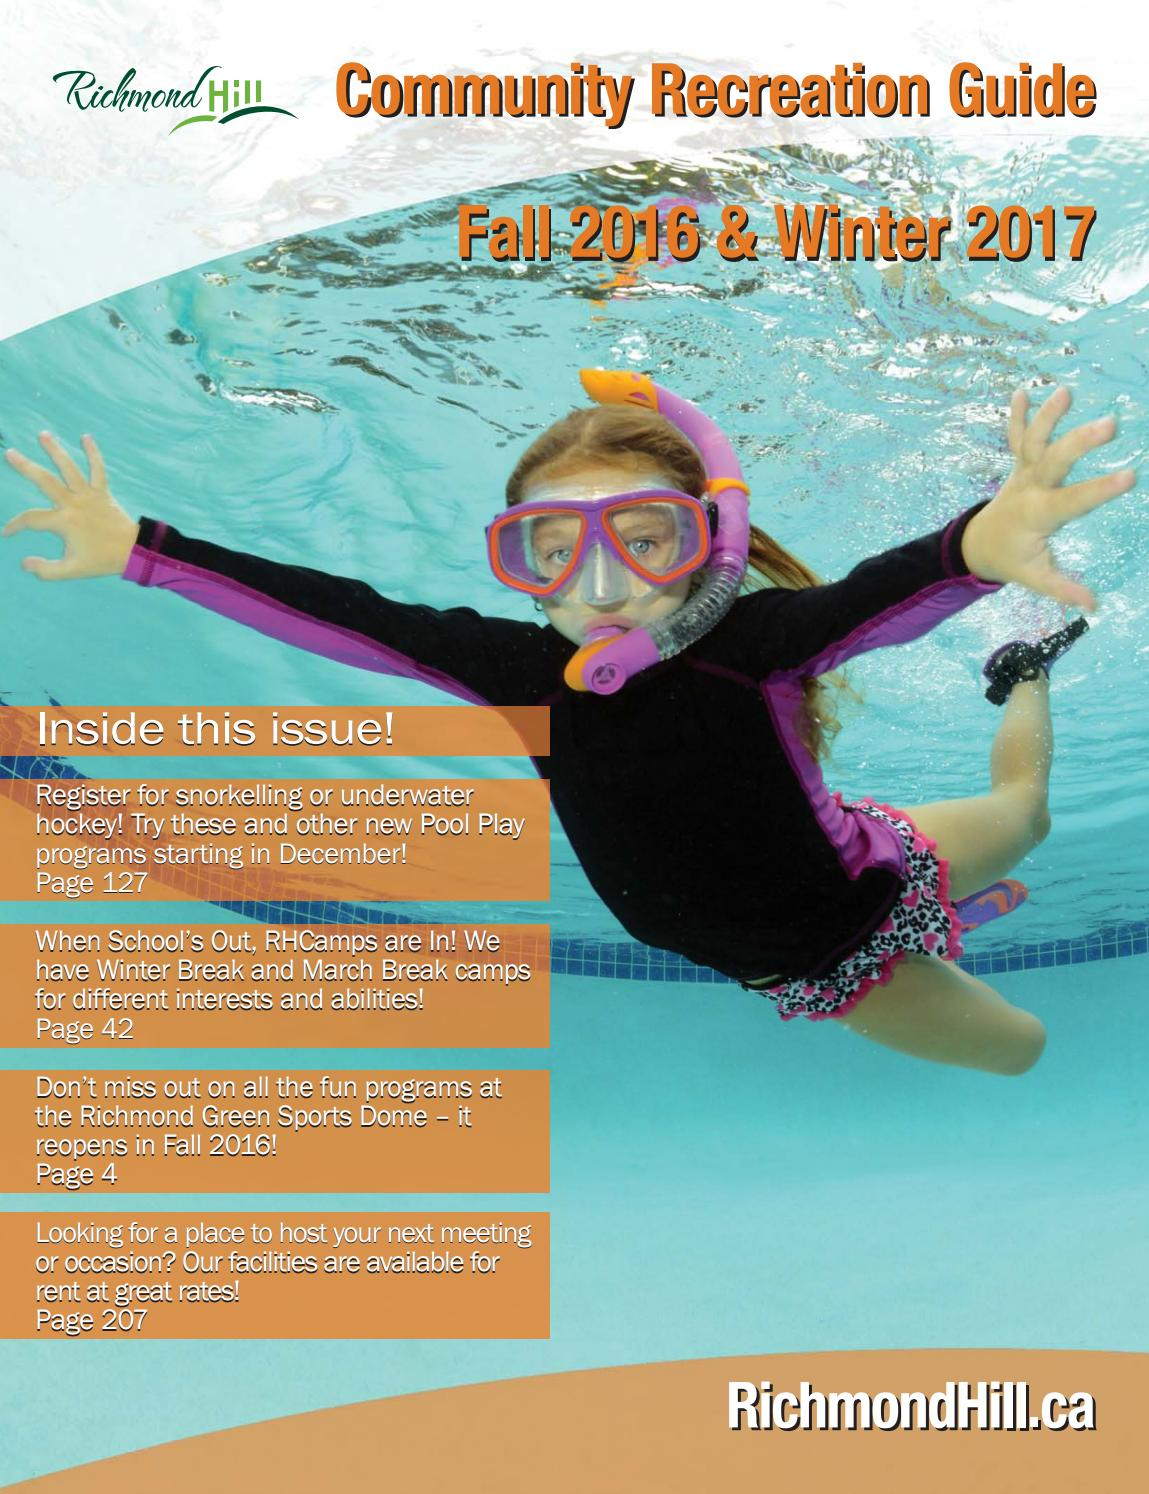 Richmond Hill Community Recreation Guide - Fall 2016 and Winter 2017 ...